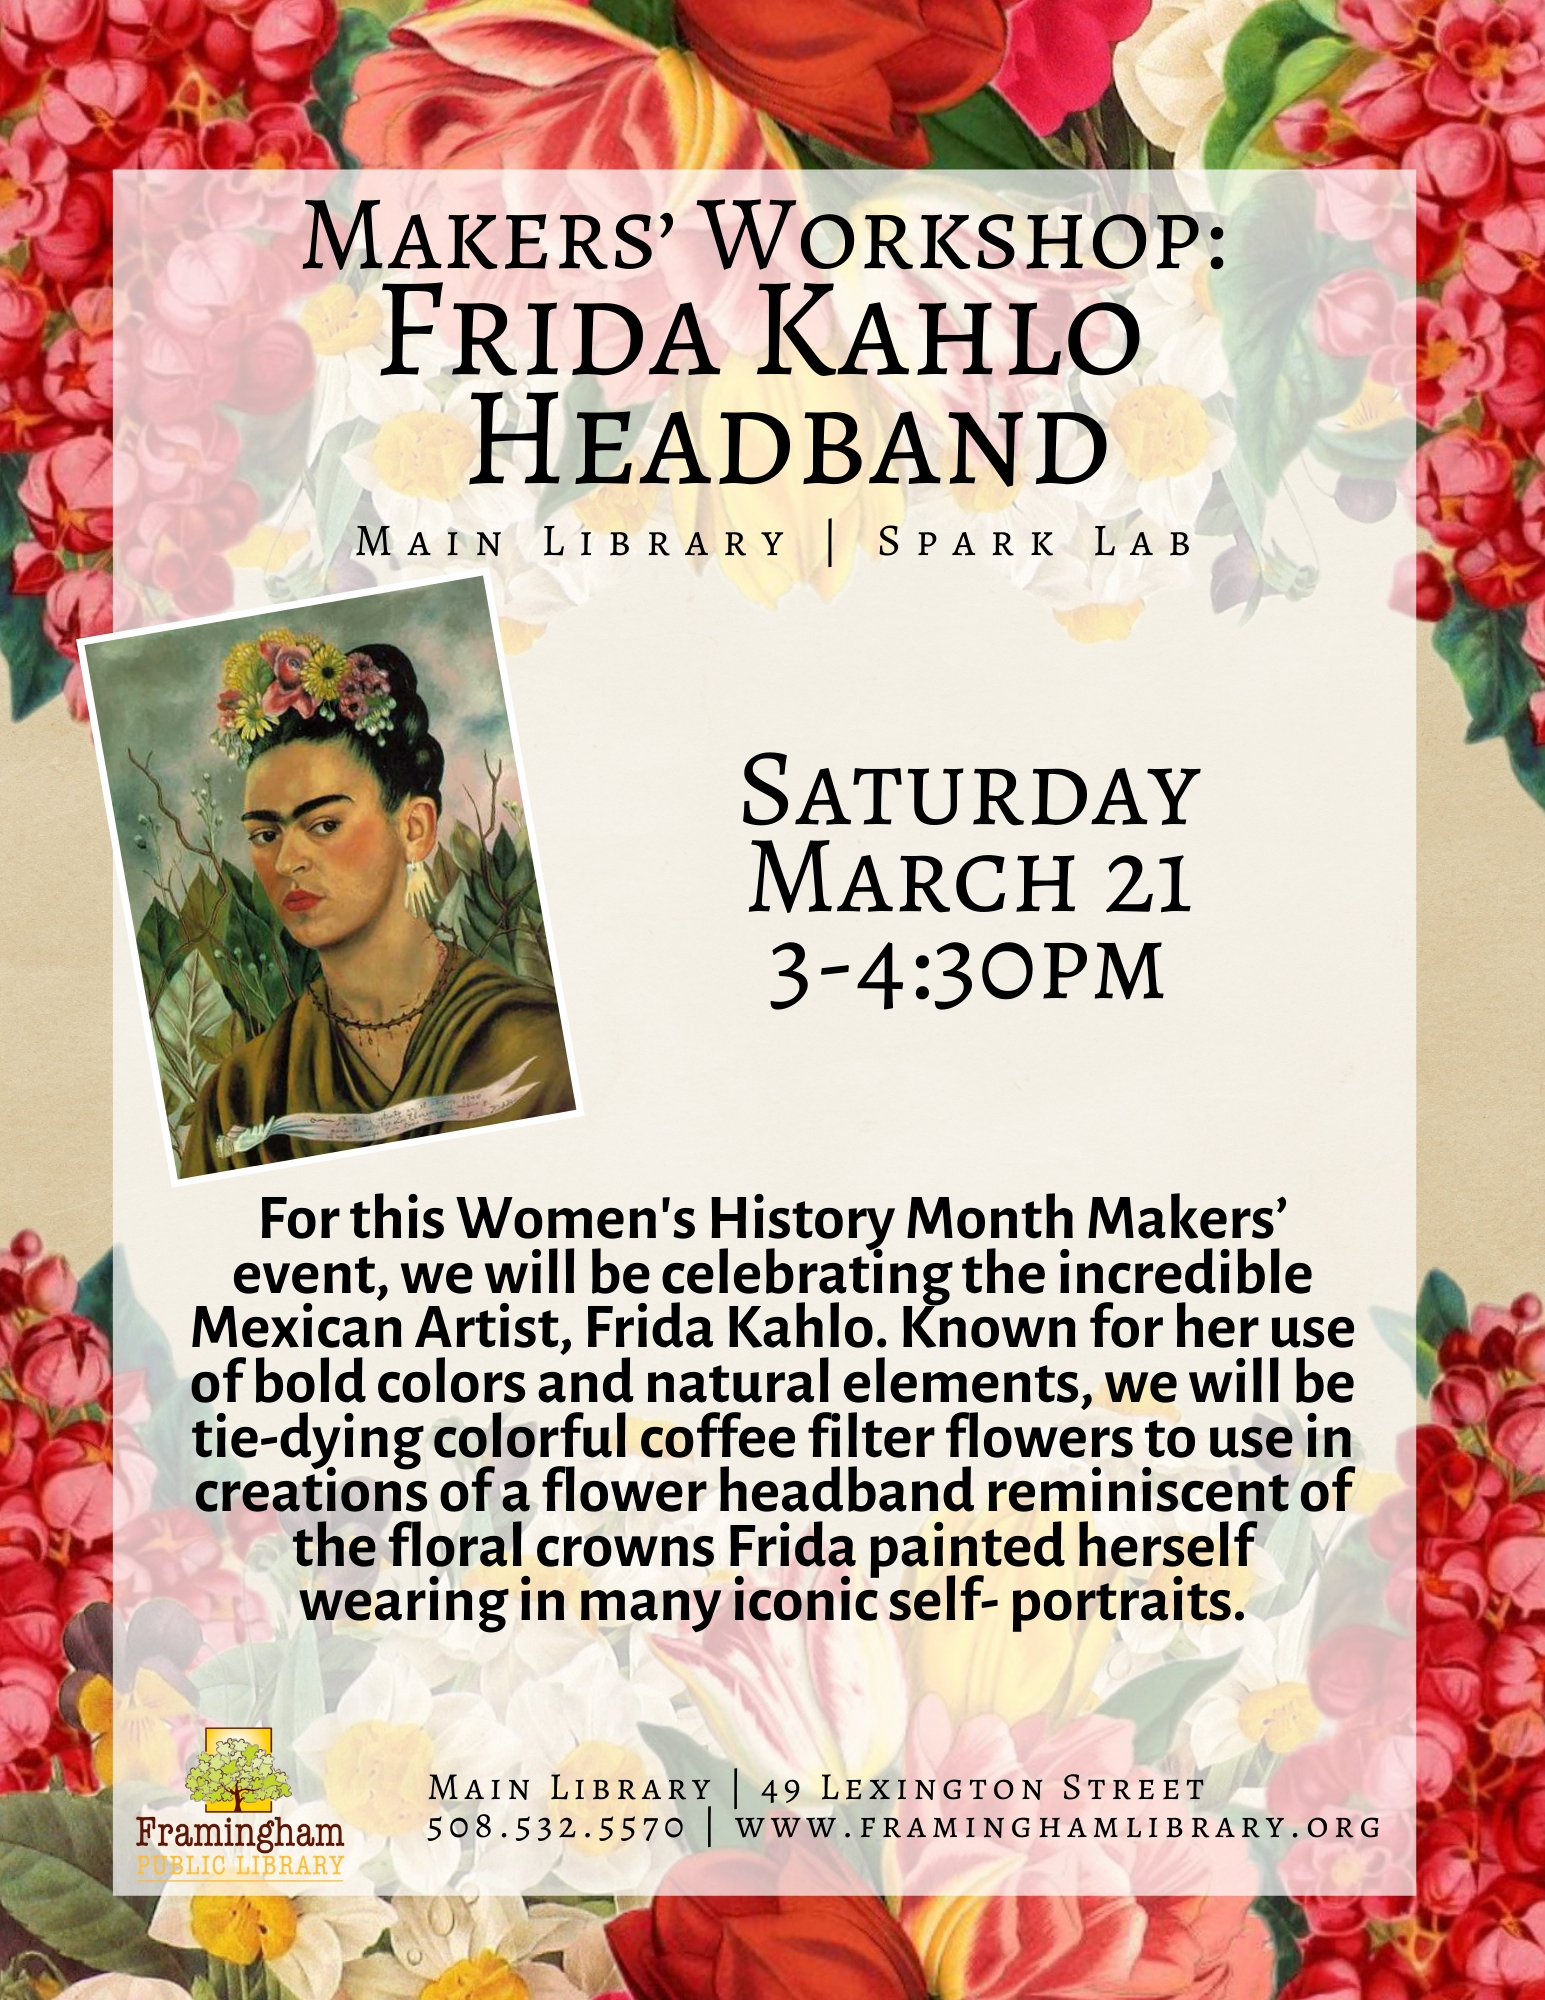 Makers' Workshop: Frida Kahlo Headband thumbnail Photo